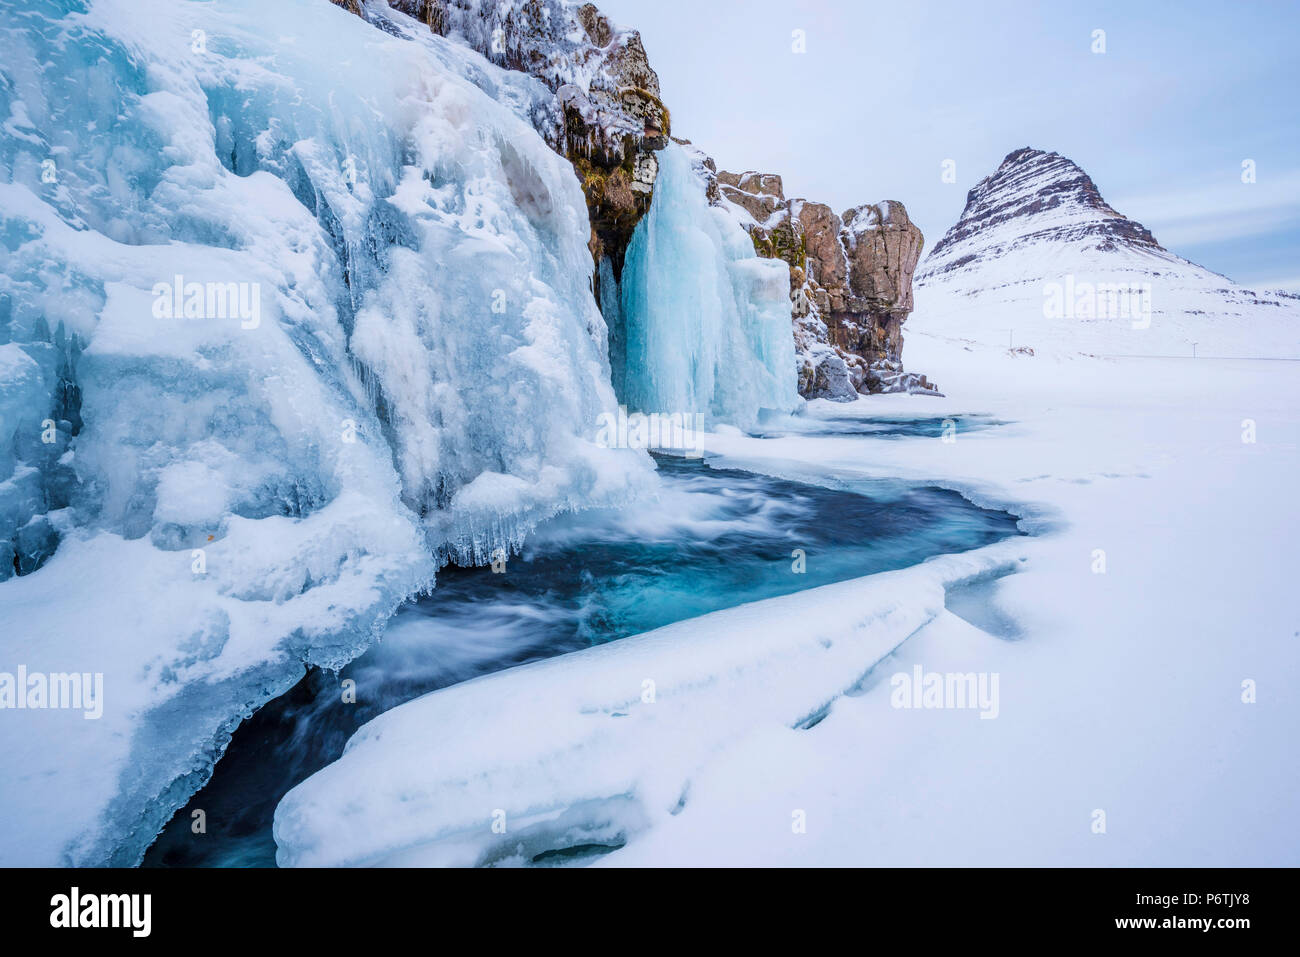 Snaefellsness peninsula, Western Iceland, Europe. Frozen Kirkjufellfoss waterfall in winter with Kirkjufell mountain in the backdrop. - Stock Image